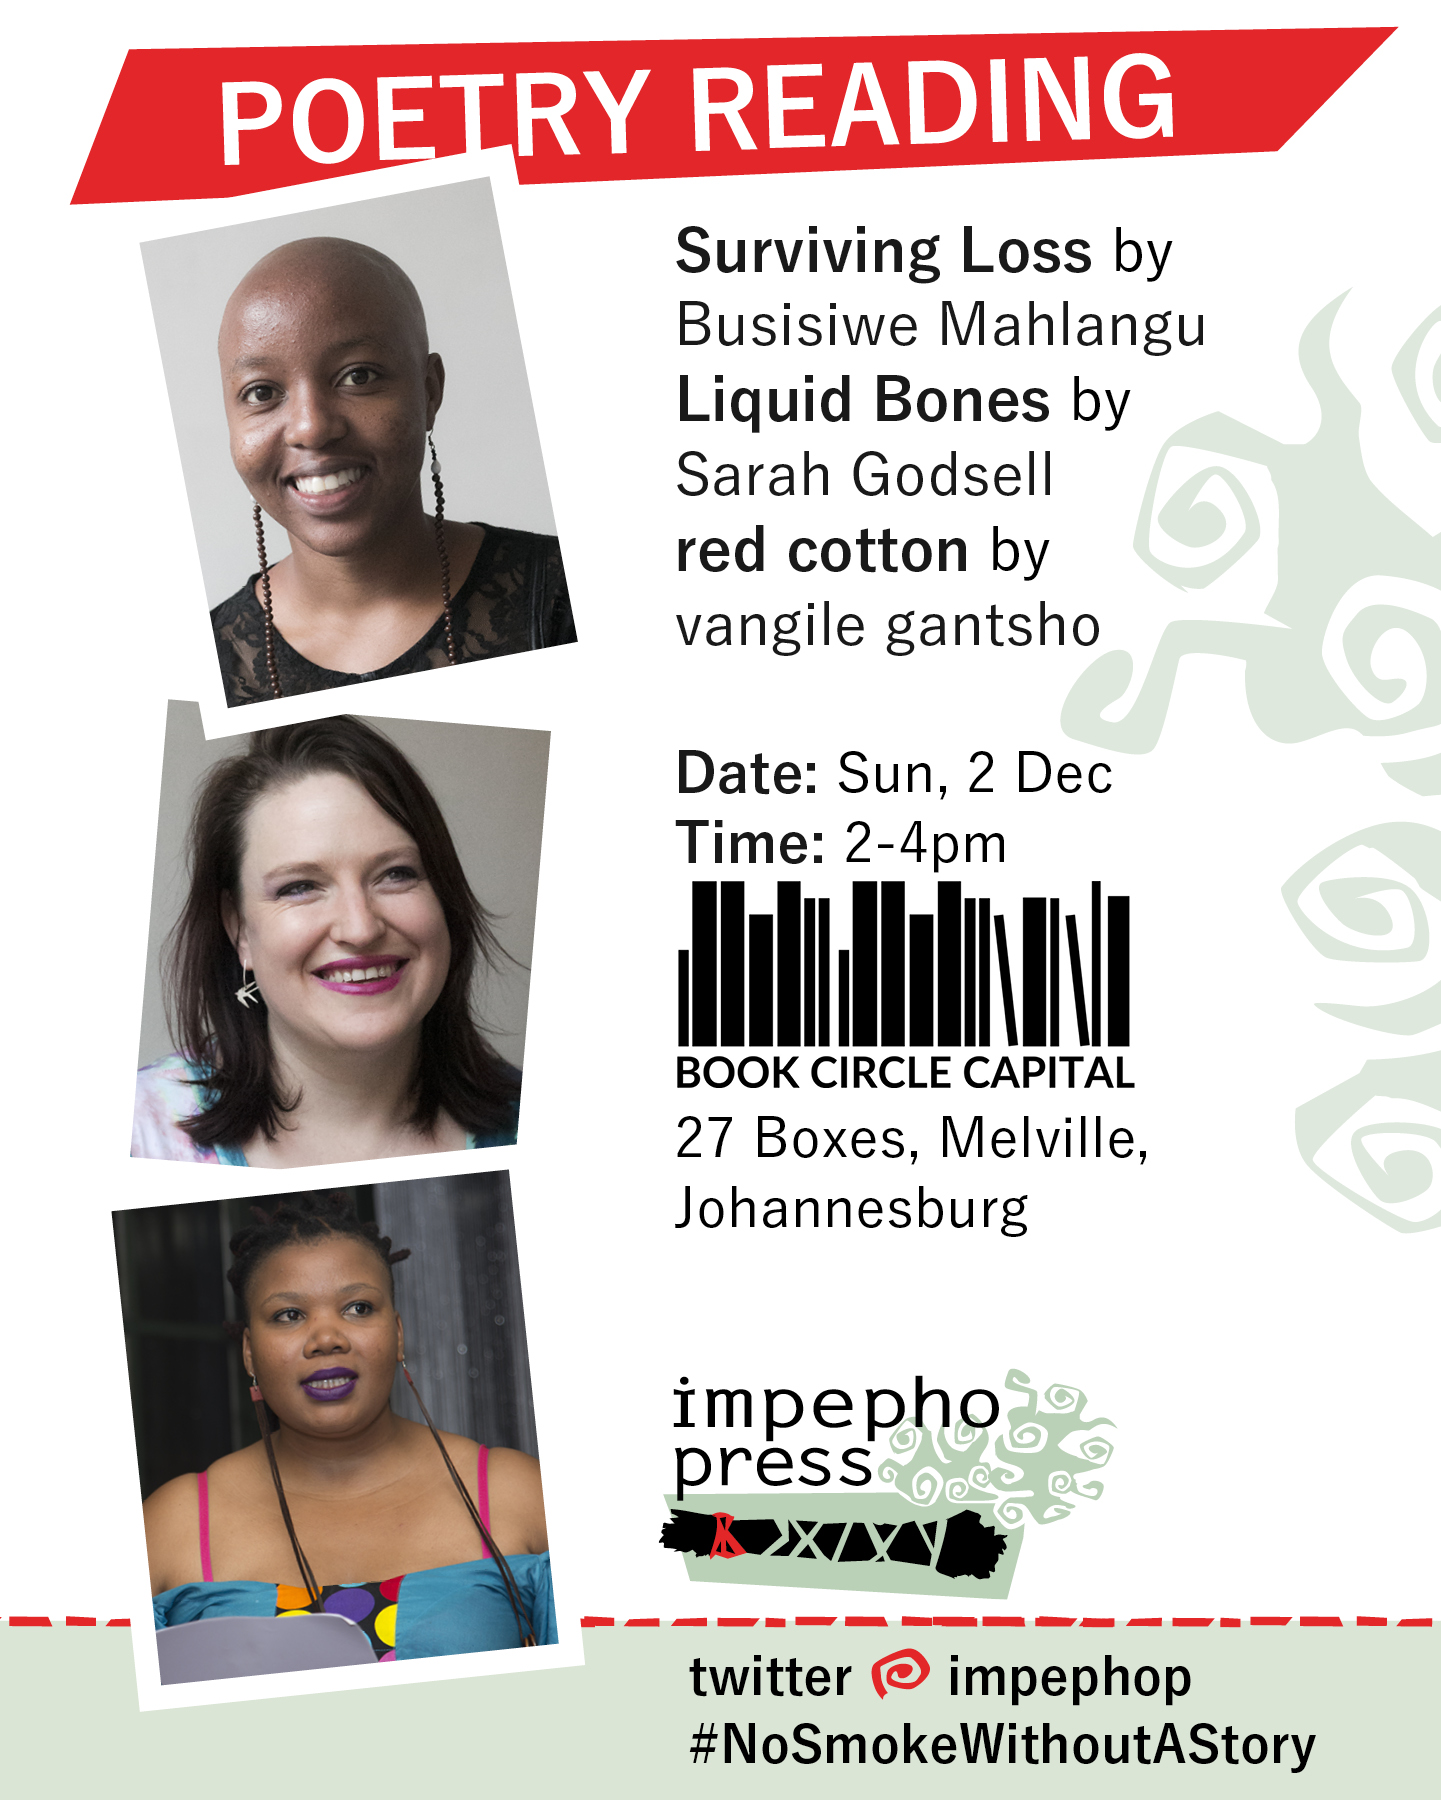 Surviving Loss by Busisiwe Mahlangu Liquid Bones by Sarah Godsell red cotton by vangile gantsho poetry reading, performance poetry, feminist, african, pan-african, south african